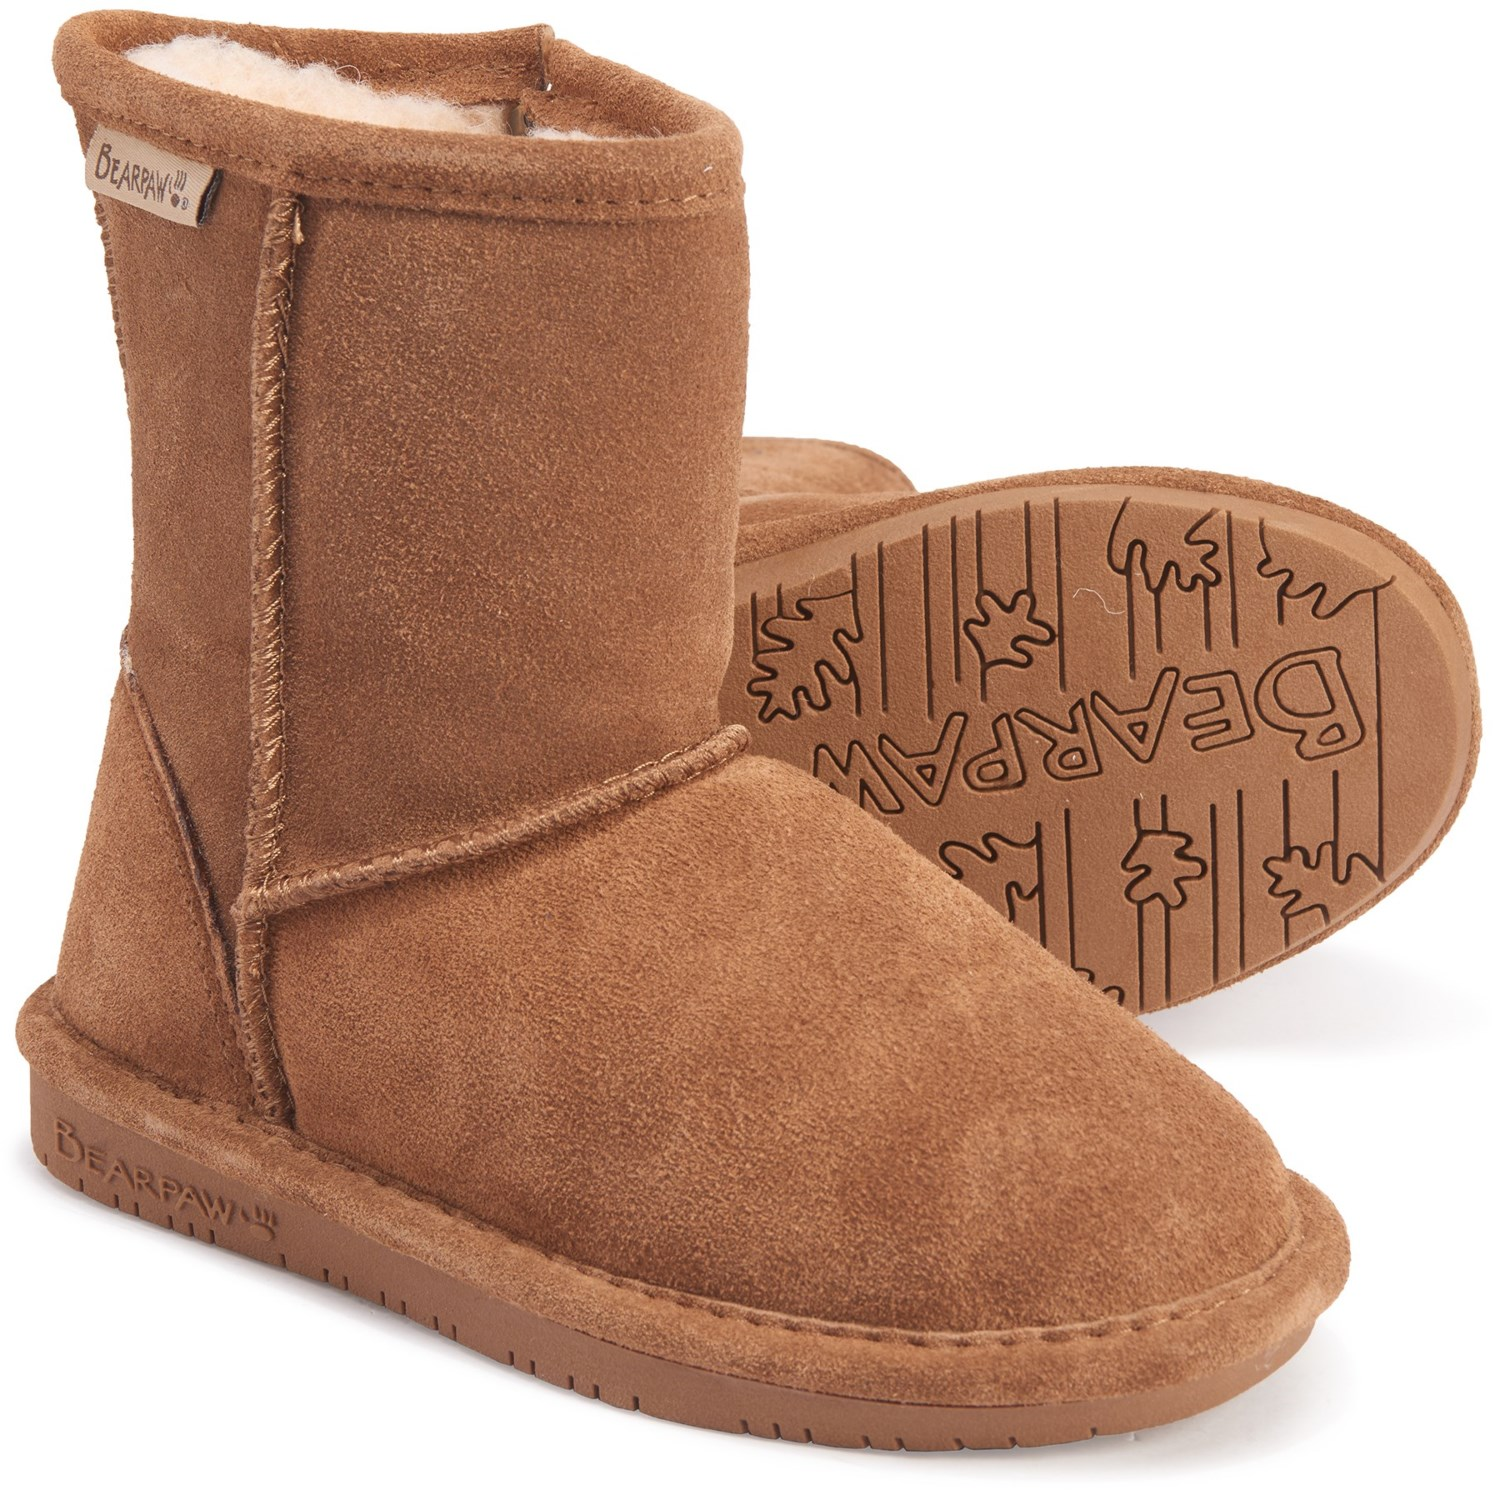 Bearpaw Emma Wool-Lined Boots (For